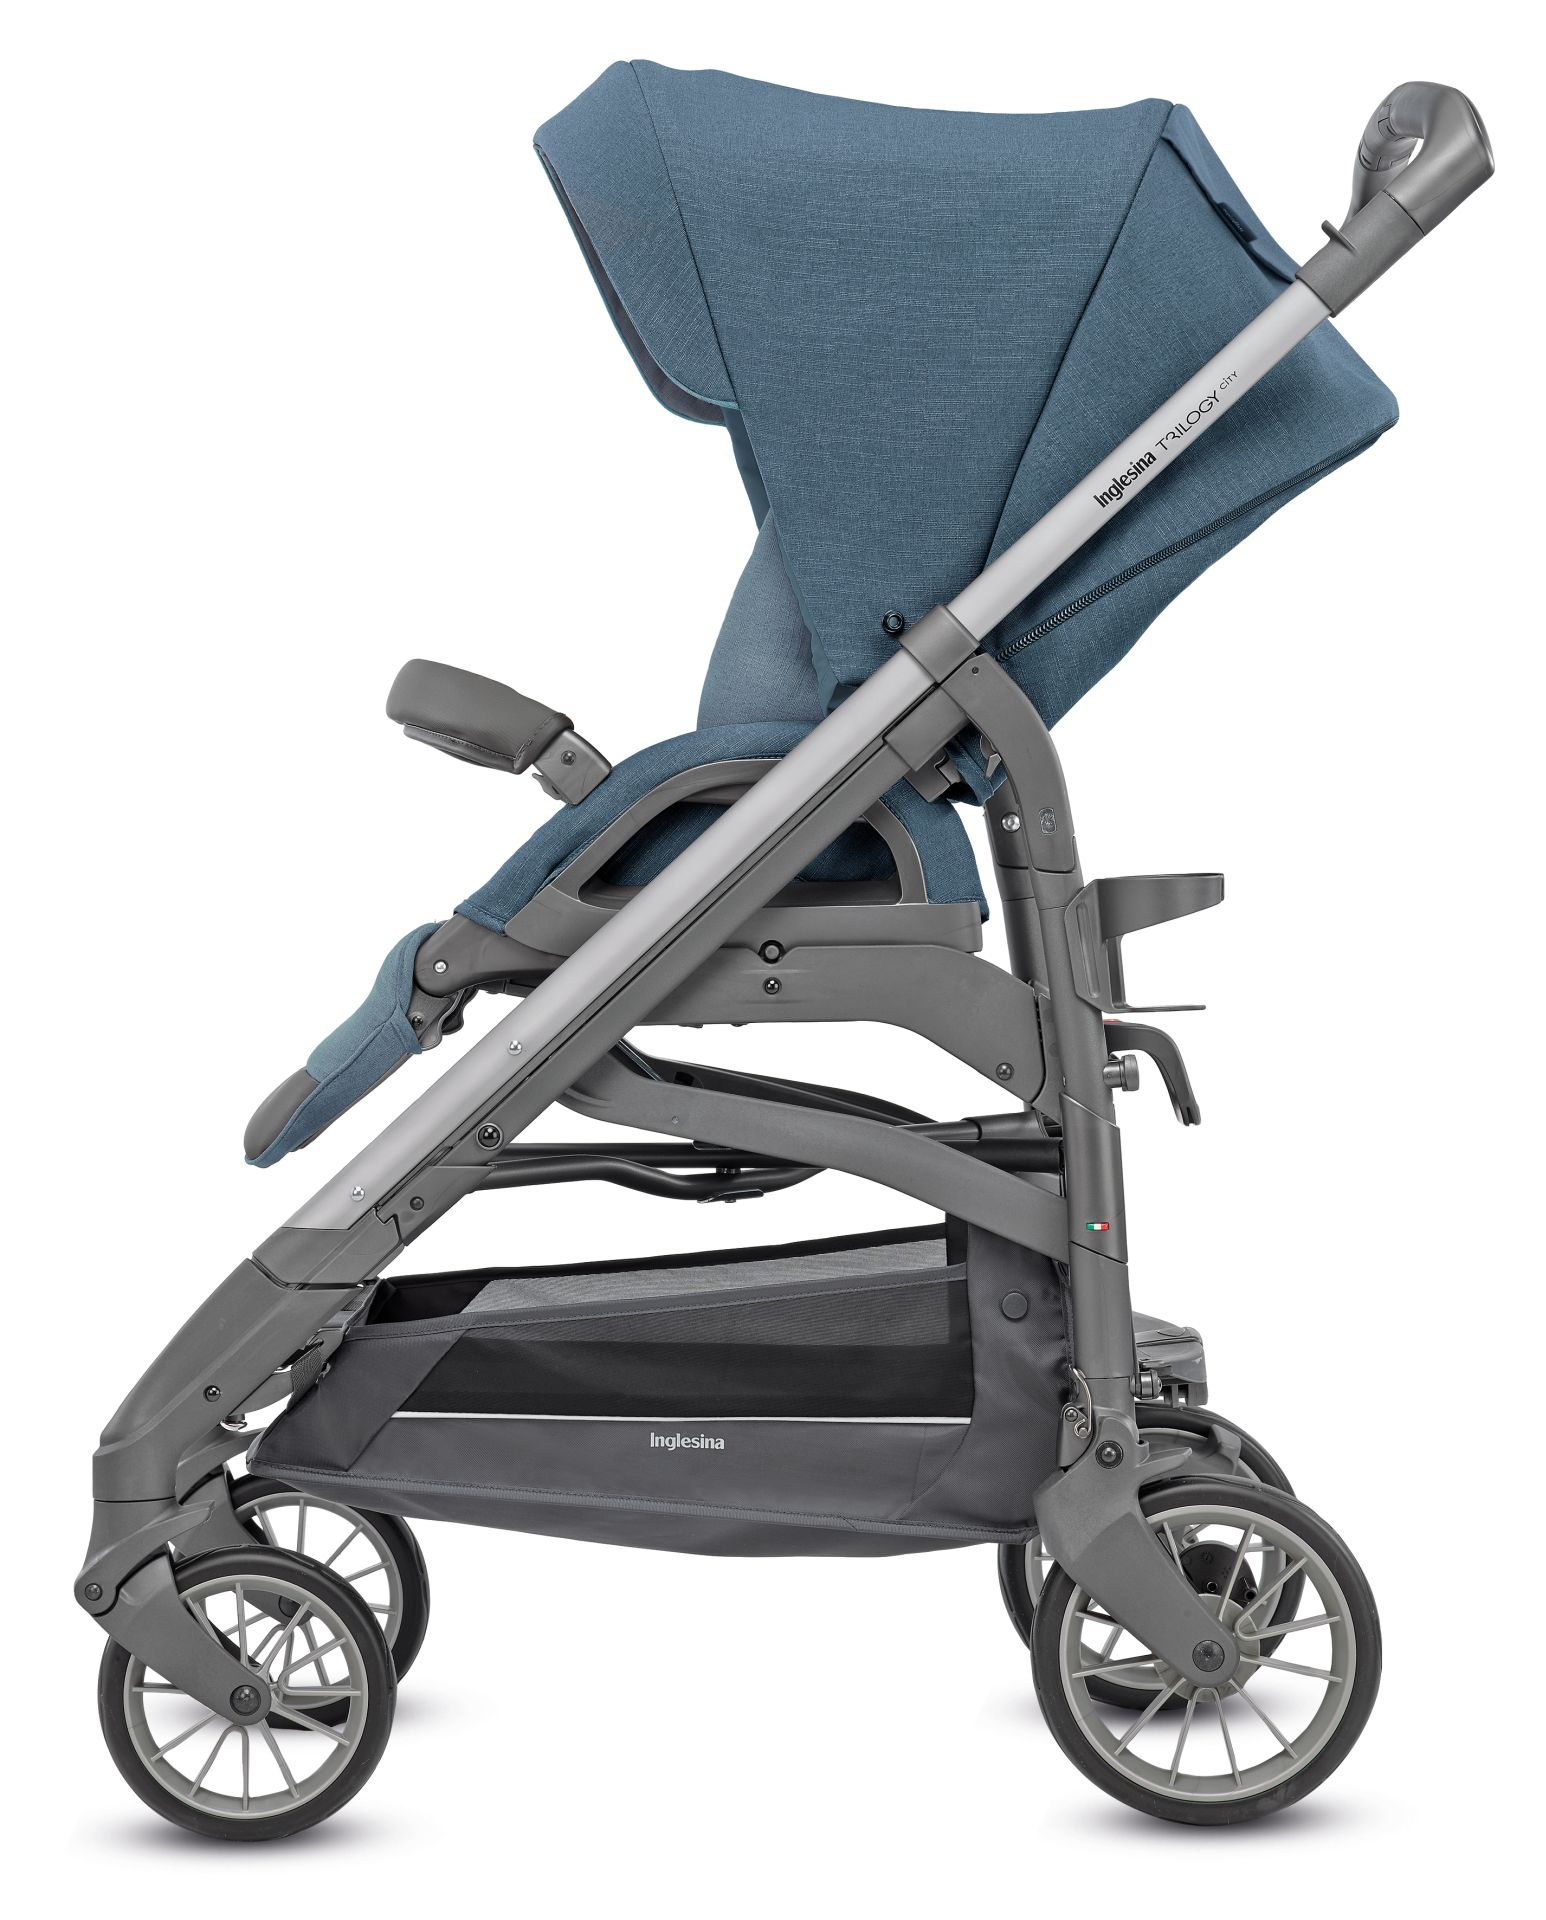 Inglesina Trilogy City System Duo 2019 Artic Blue - Buy at ...